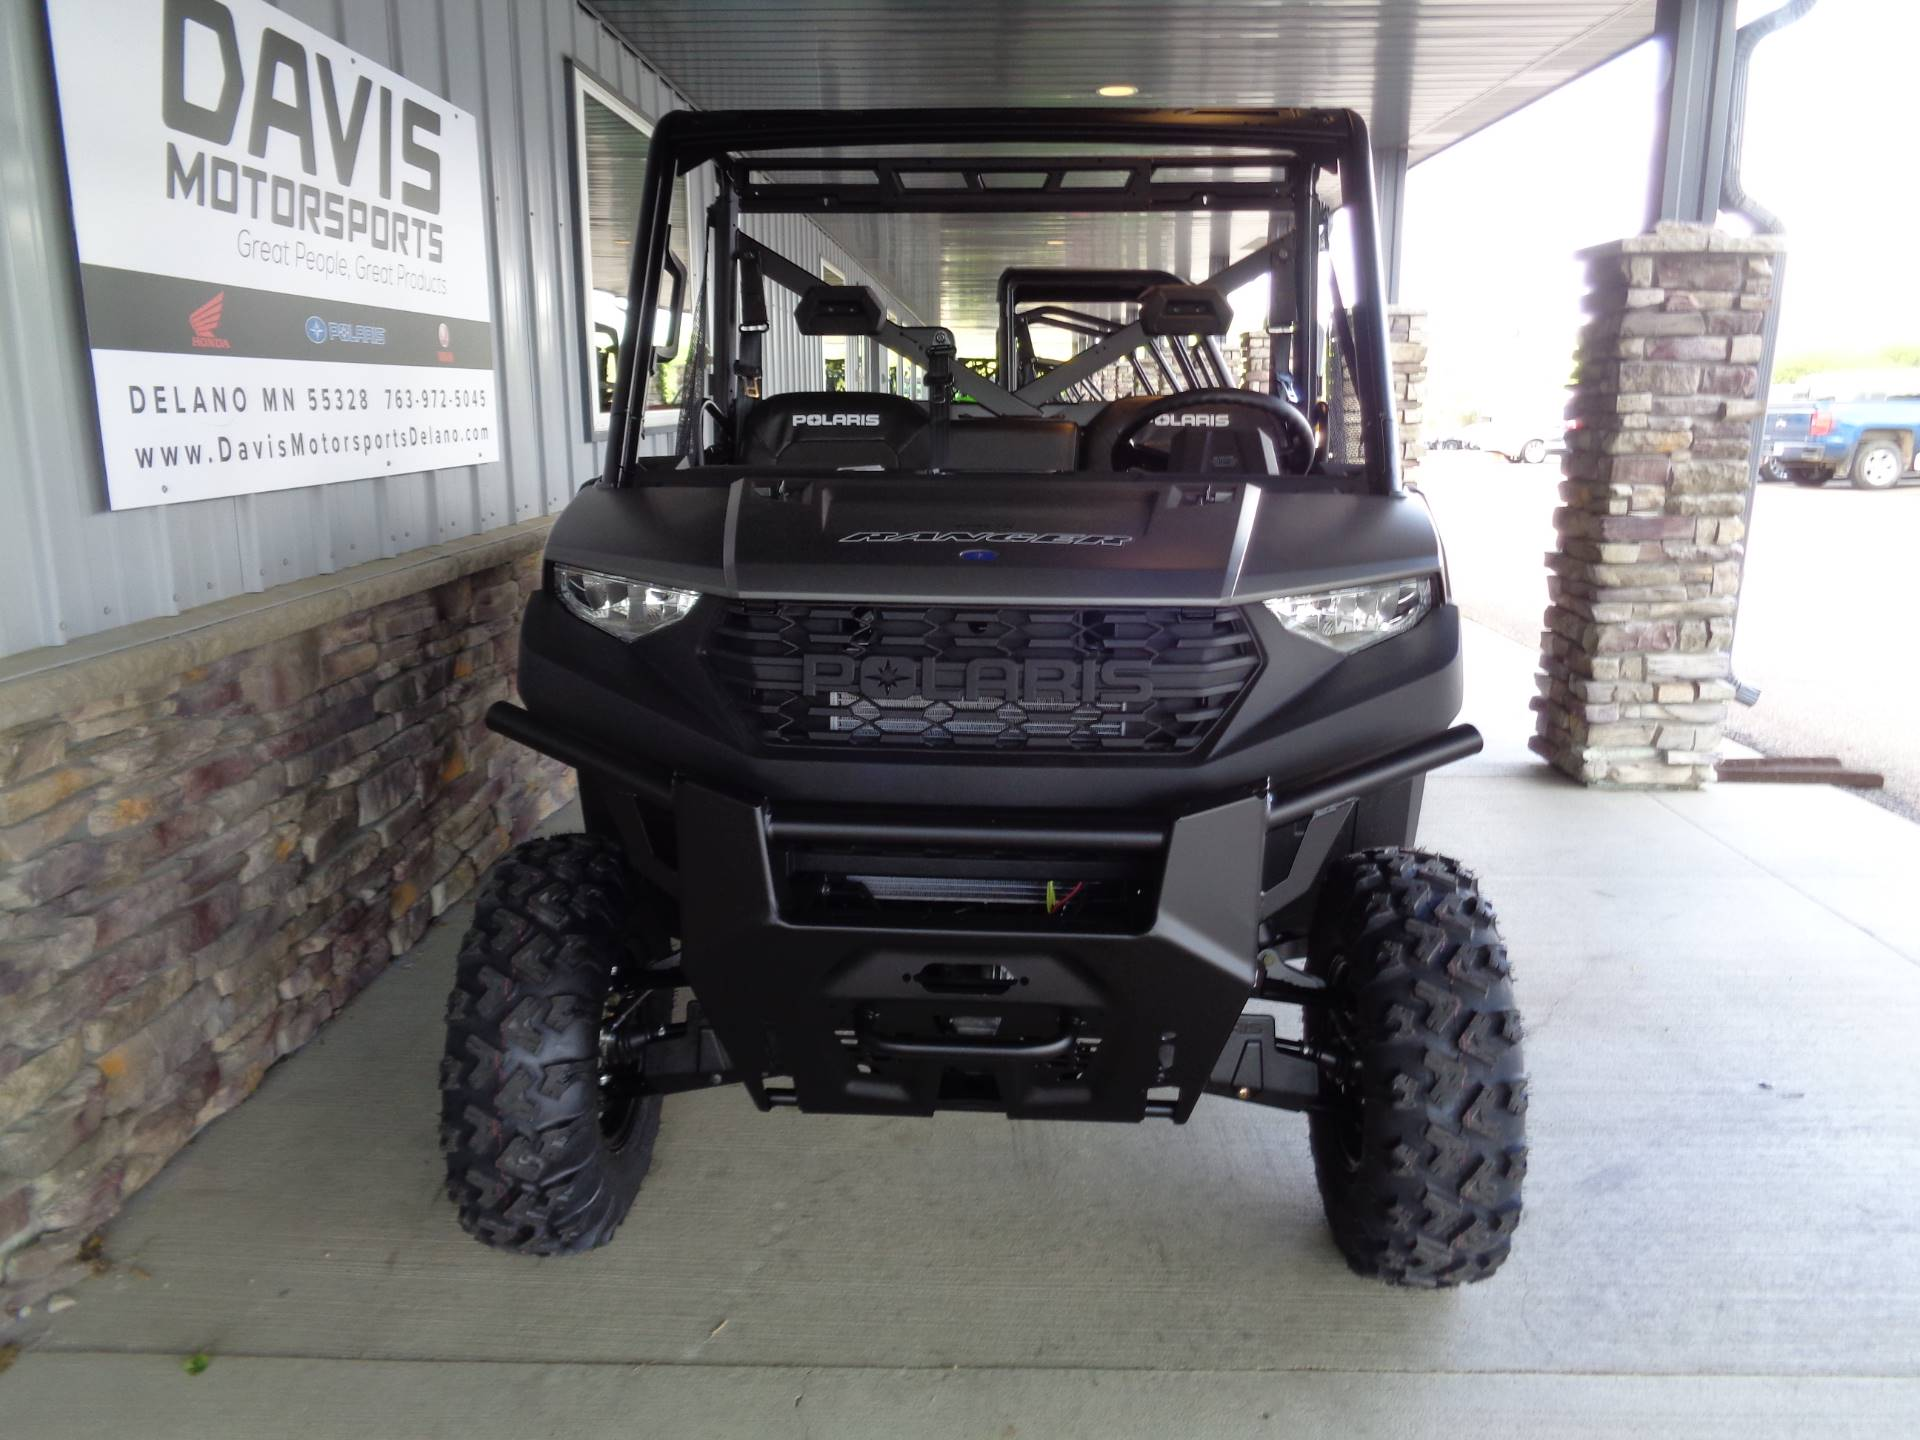 2020 Polaris Ranger 1000 Premium in Delano, Minnesota - Photo 11